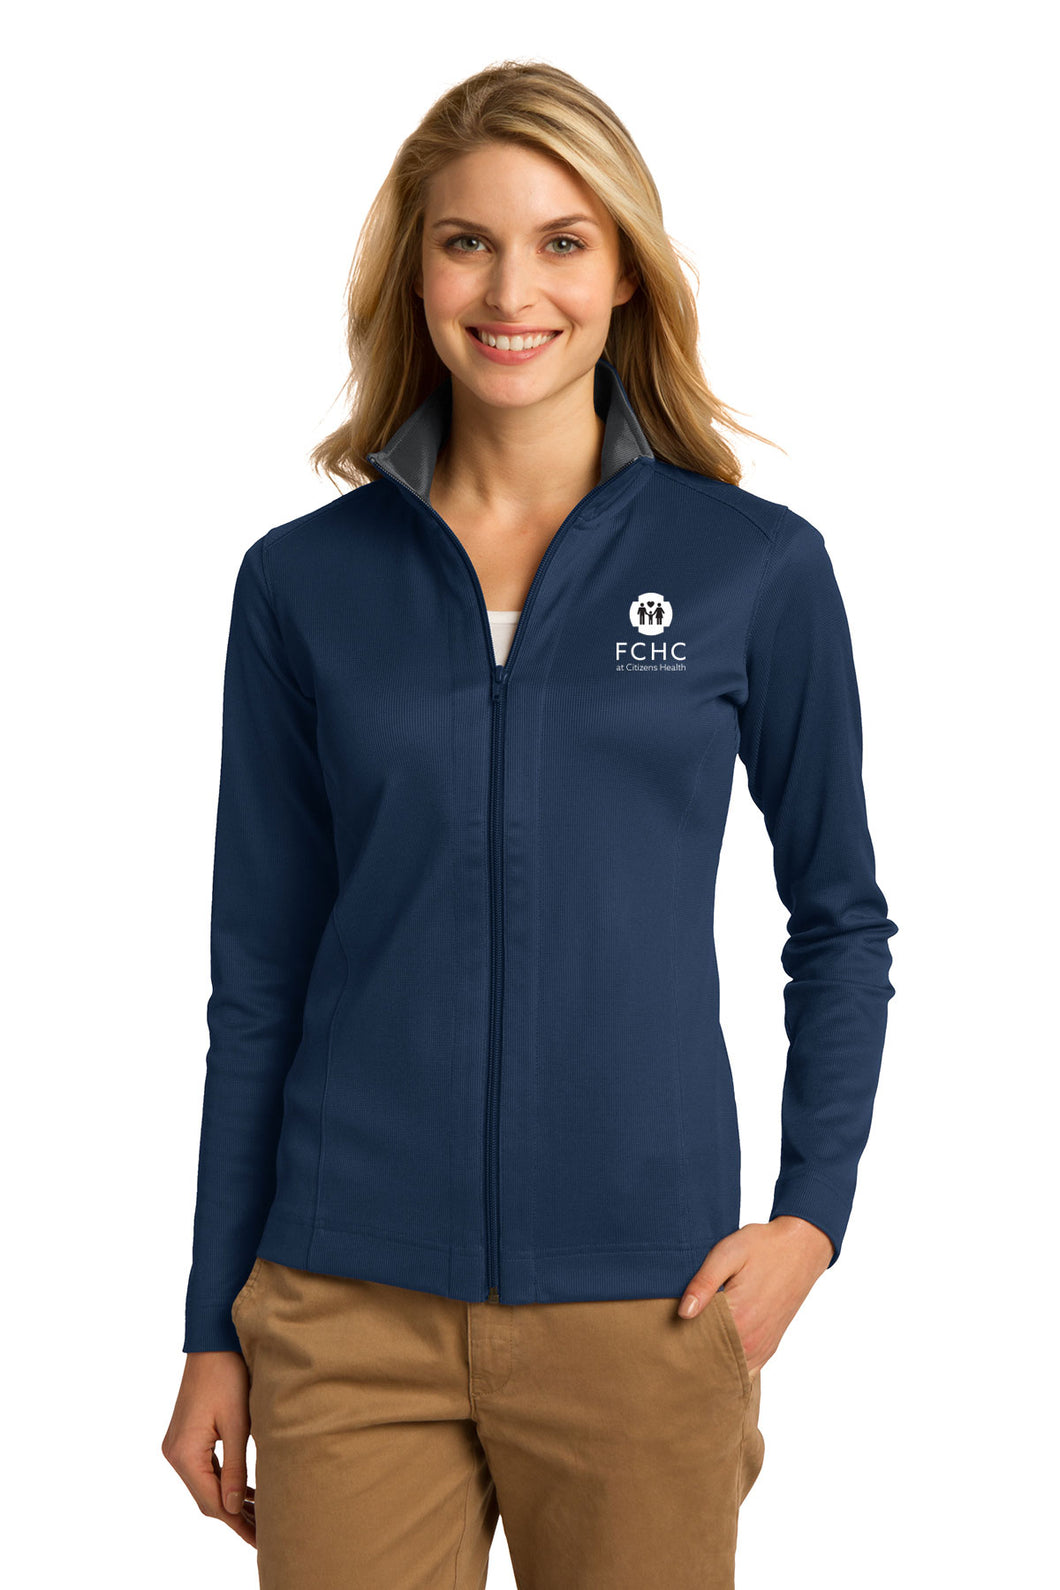 Port Authority® Ladies Vertical Texture Full-Zip Jacket - FCHC